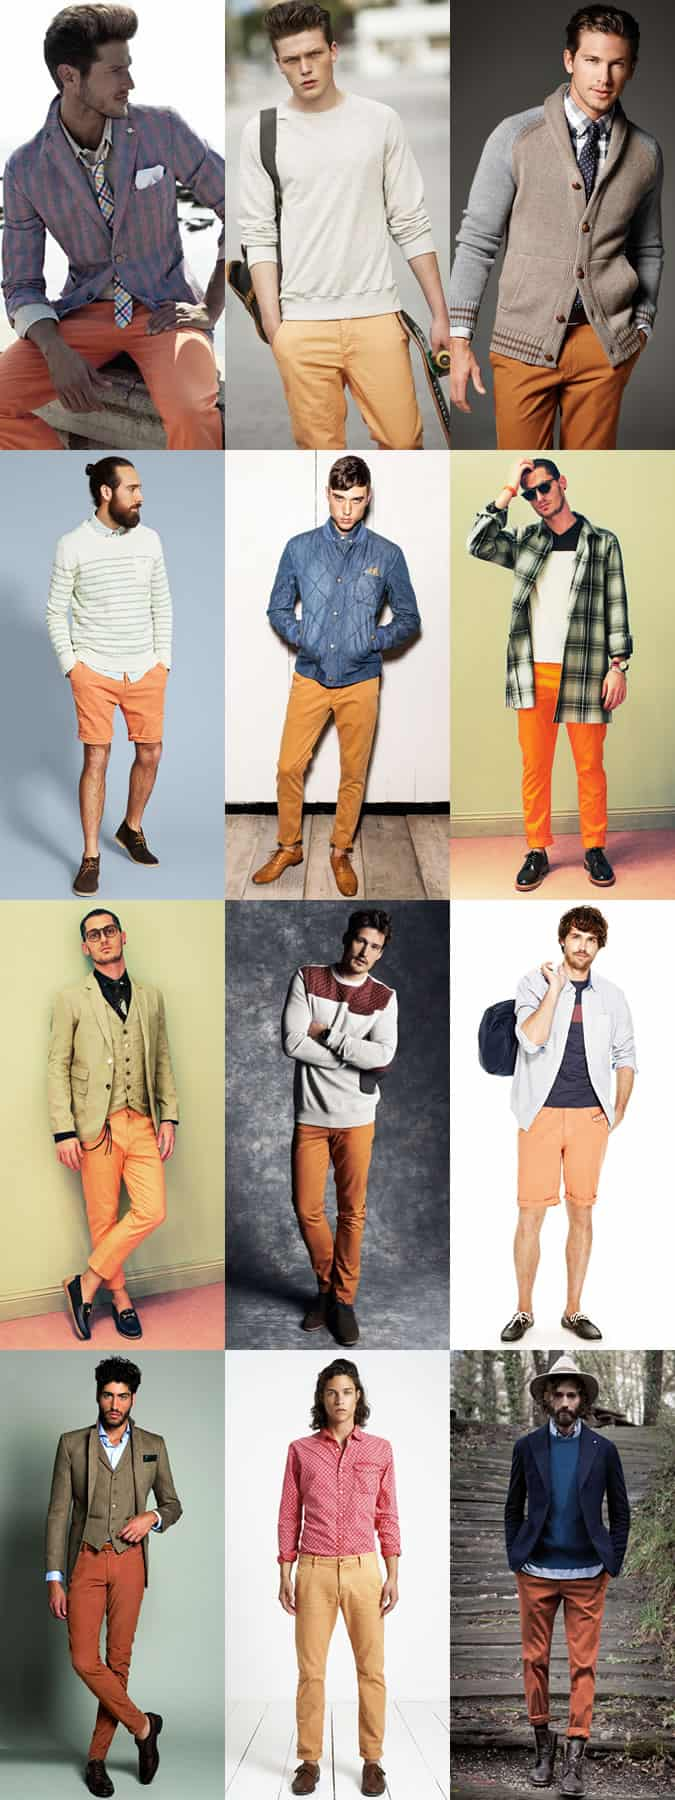 Men's Orange Legwear Outfit Inspiration Lookbook